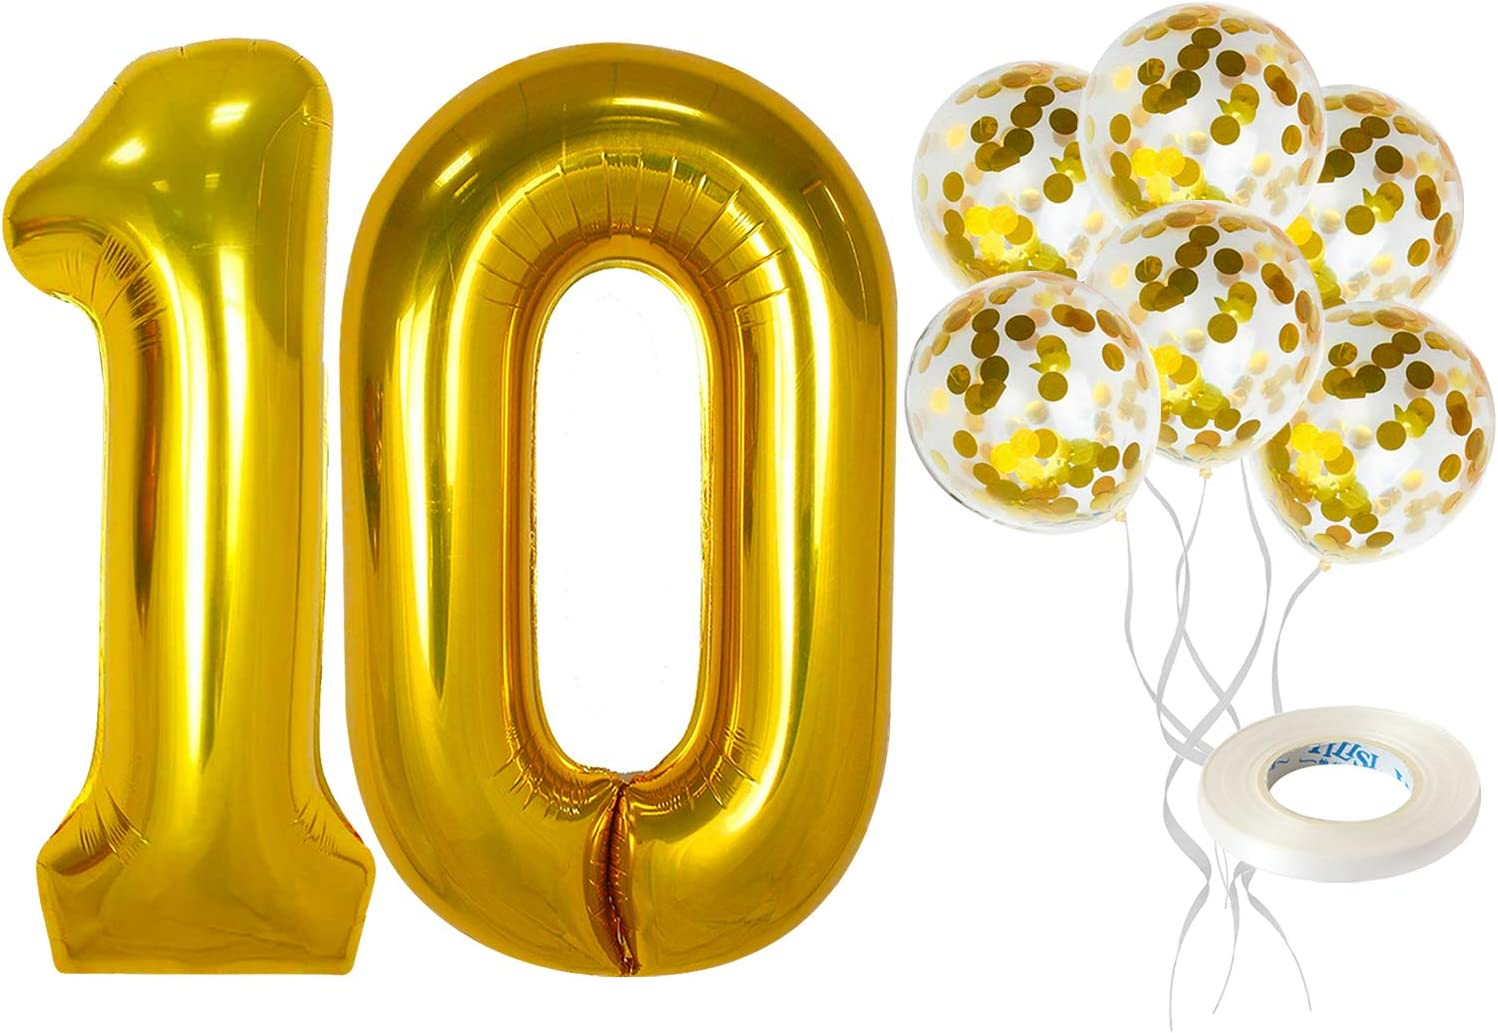 Gold Number 10 Balloon and Confetti Balloons set - Large, 40 Inch Mylar for 10 Birthday | 5 Gold Confetti Balloons, 12 Inch | 10th Birthday Decorations for Girls or 10 Year Anniversary Decorations